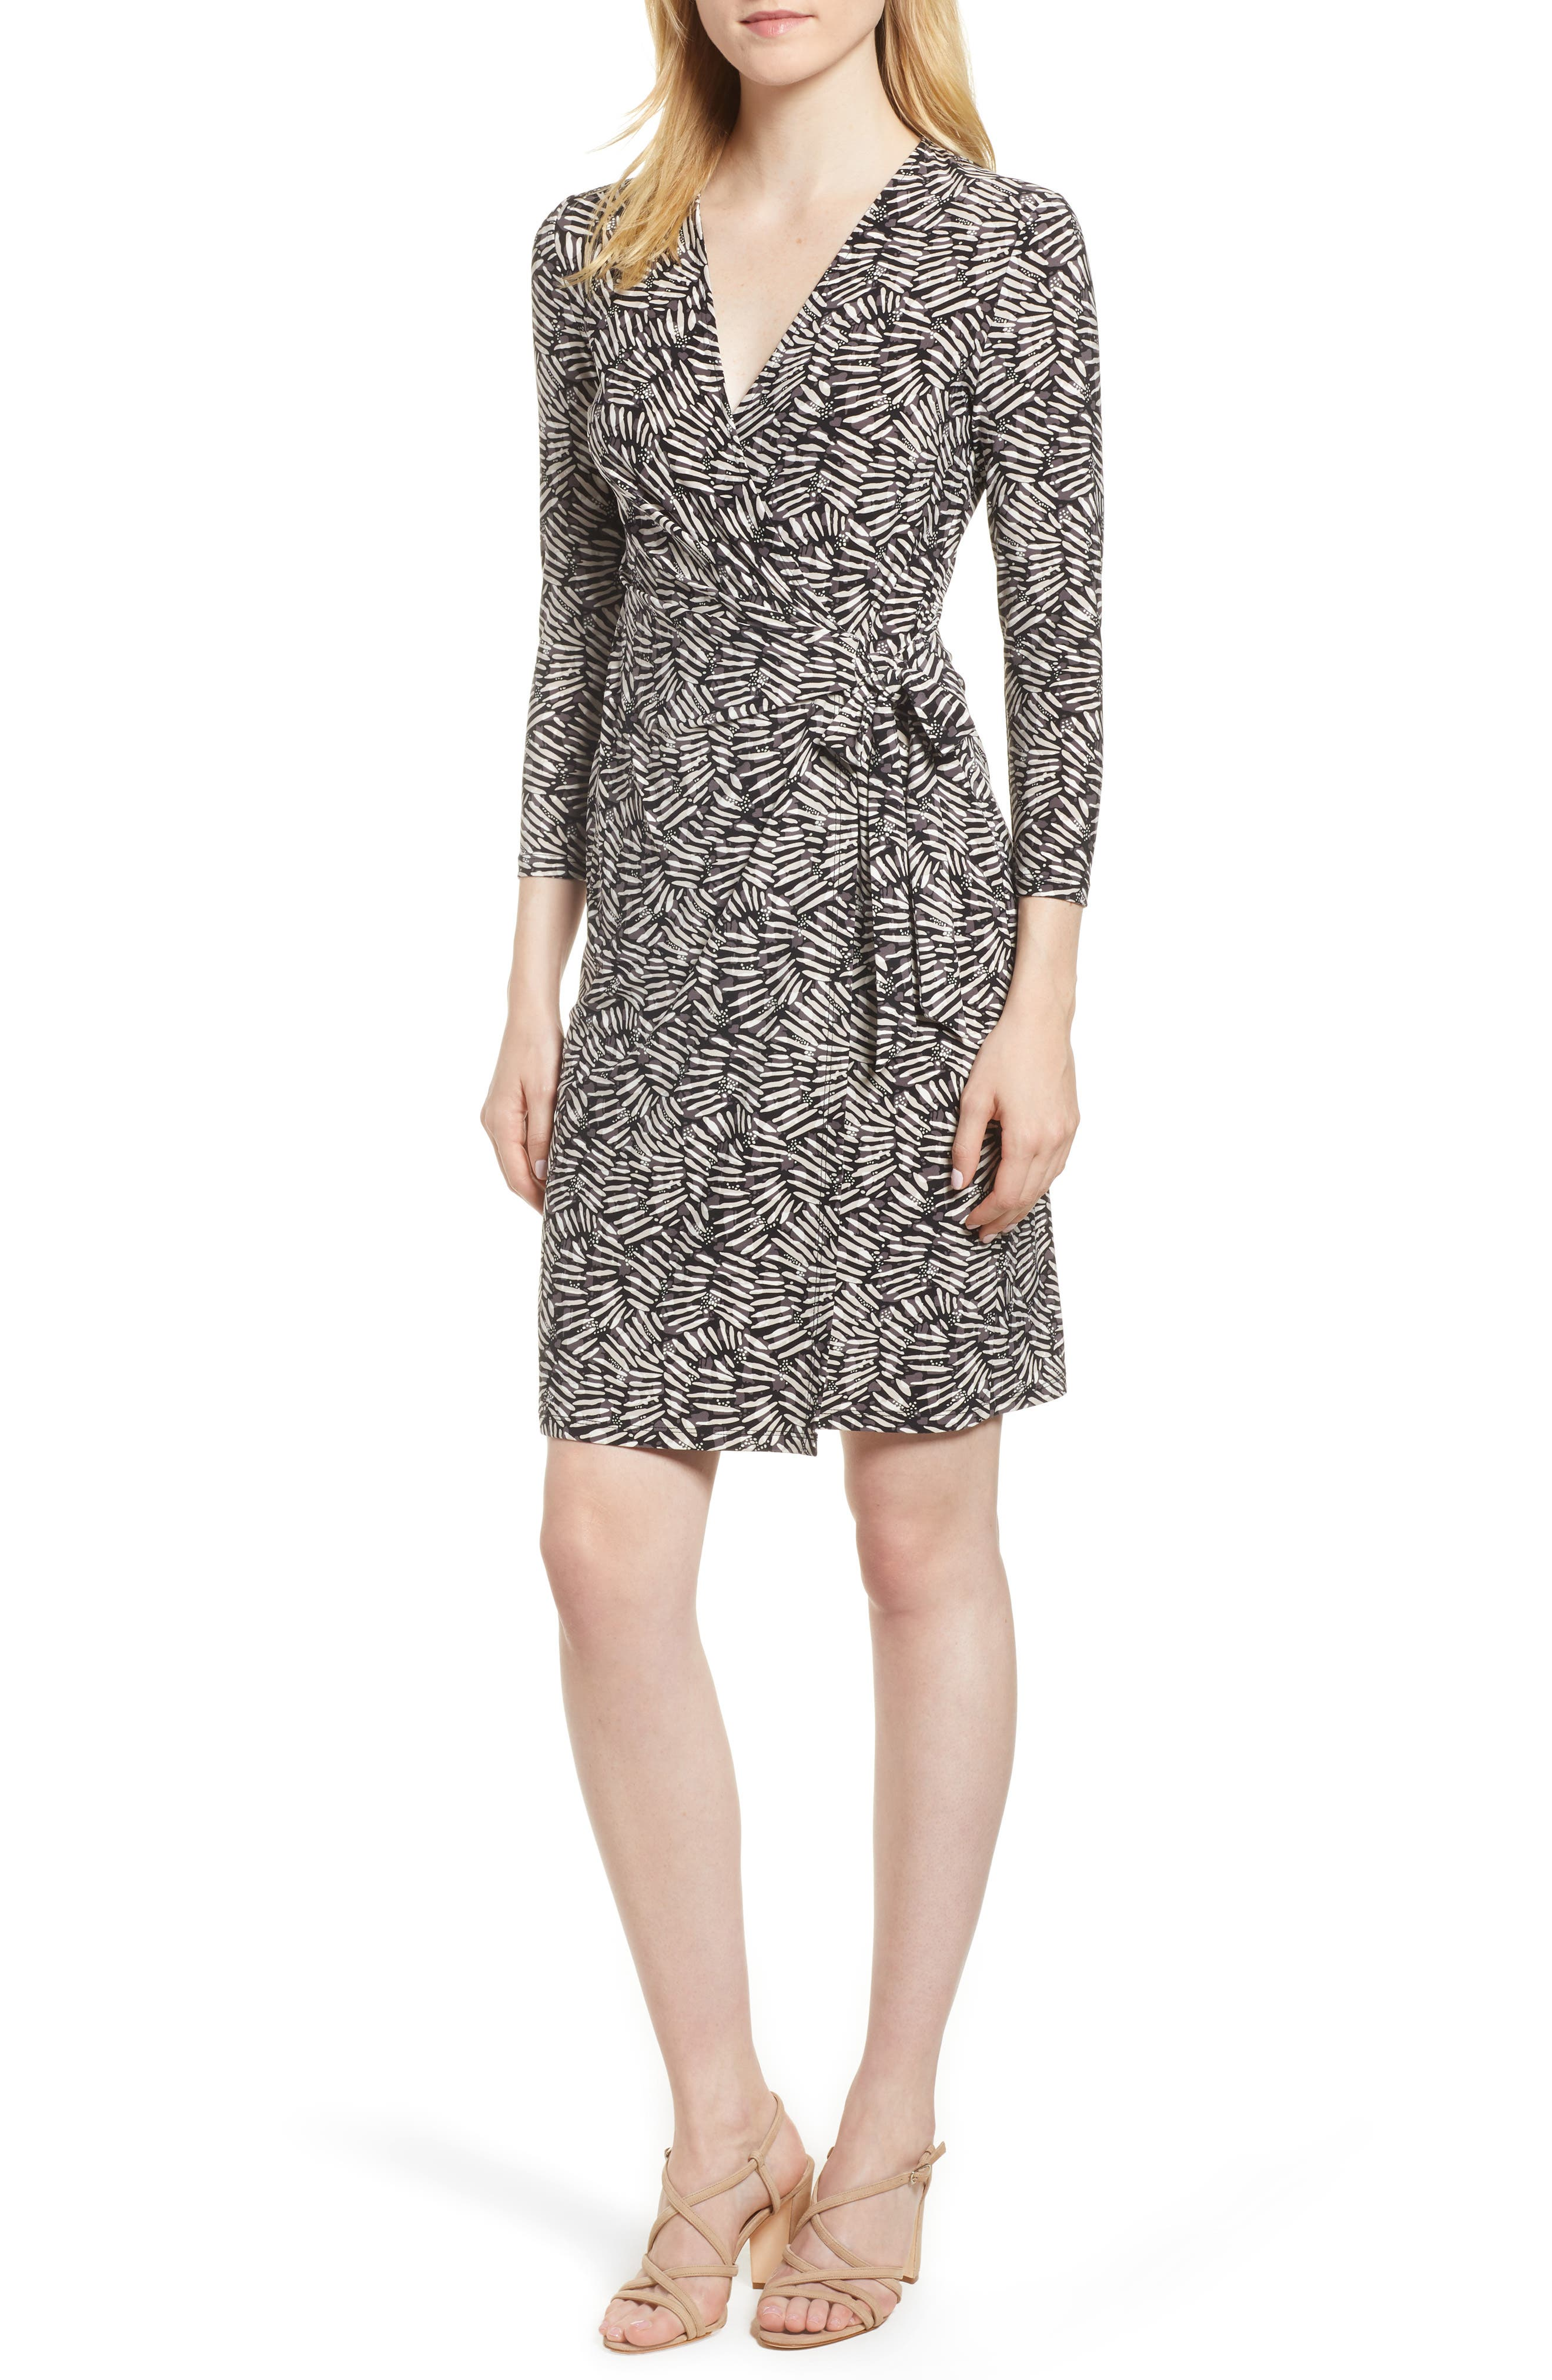 Cedarwood Stretch Crepe Faux Wrap Dress,                         Main,                         color, Black/ Oyster Shell Combo